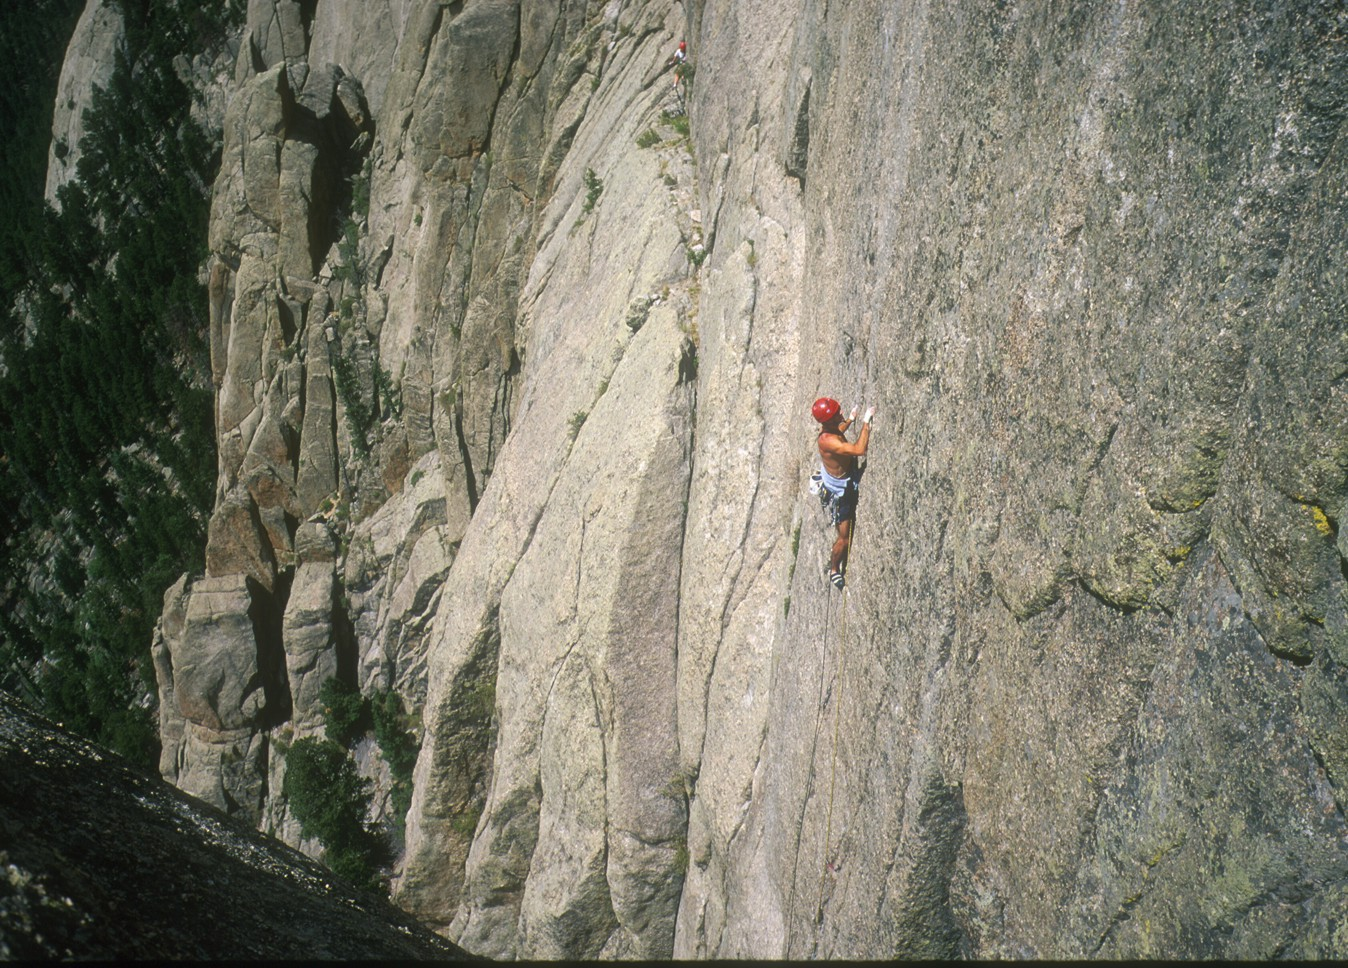 Leading the awesome finger crack of Cheap Date; this route makes a great alternative finish to Fat City